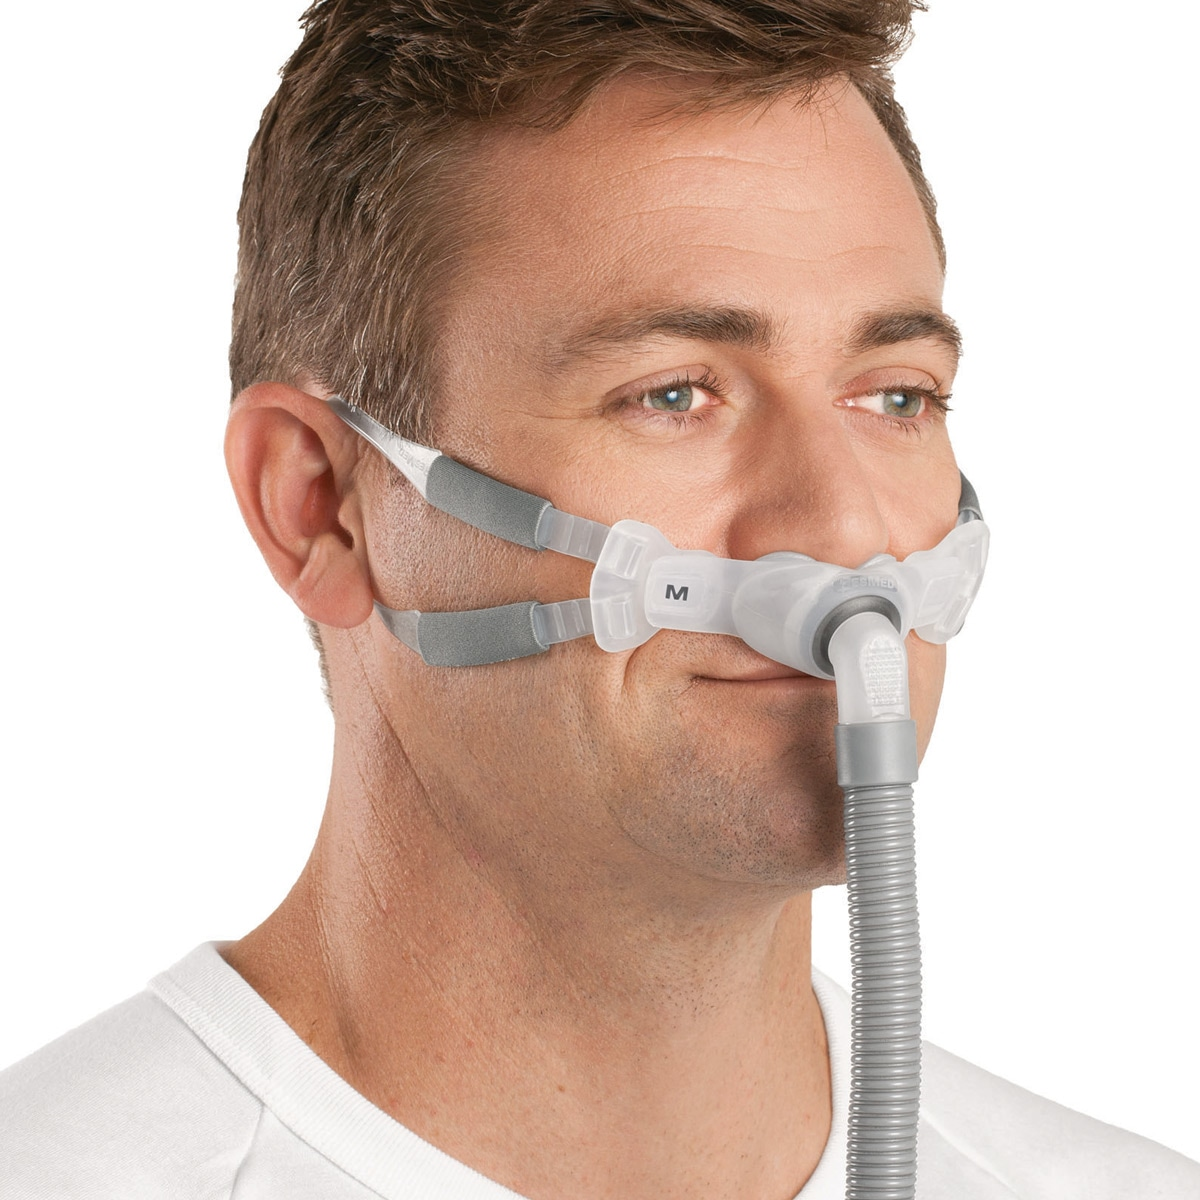 resmed swift fx bella nasal pillows cpap bipap mask with headgear